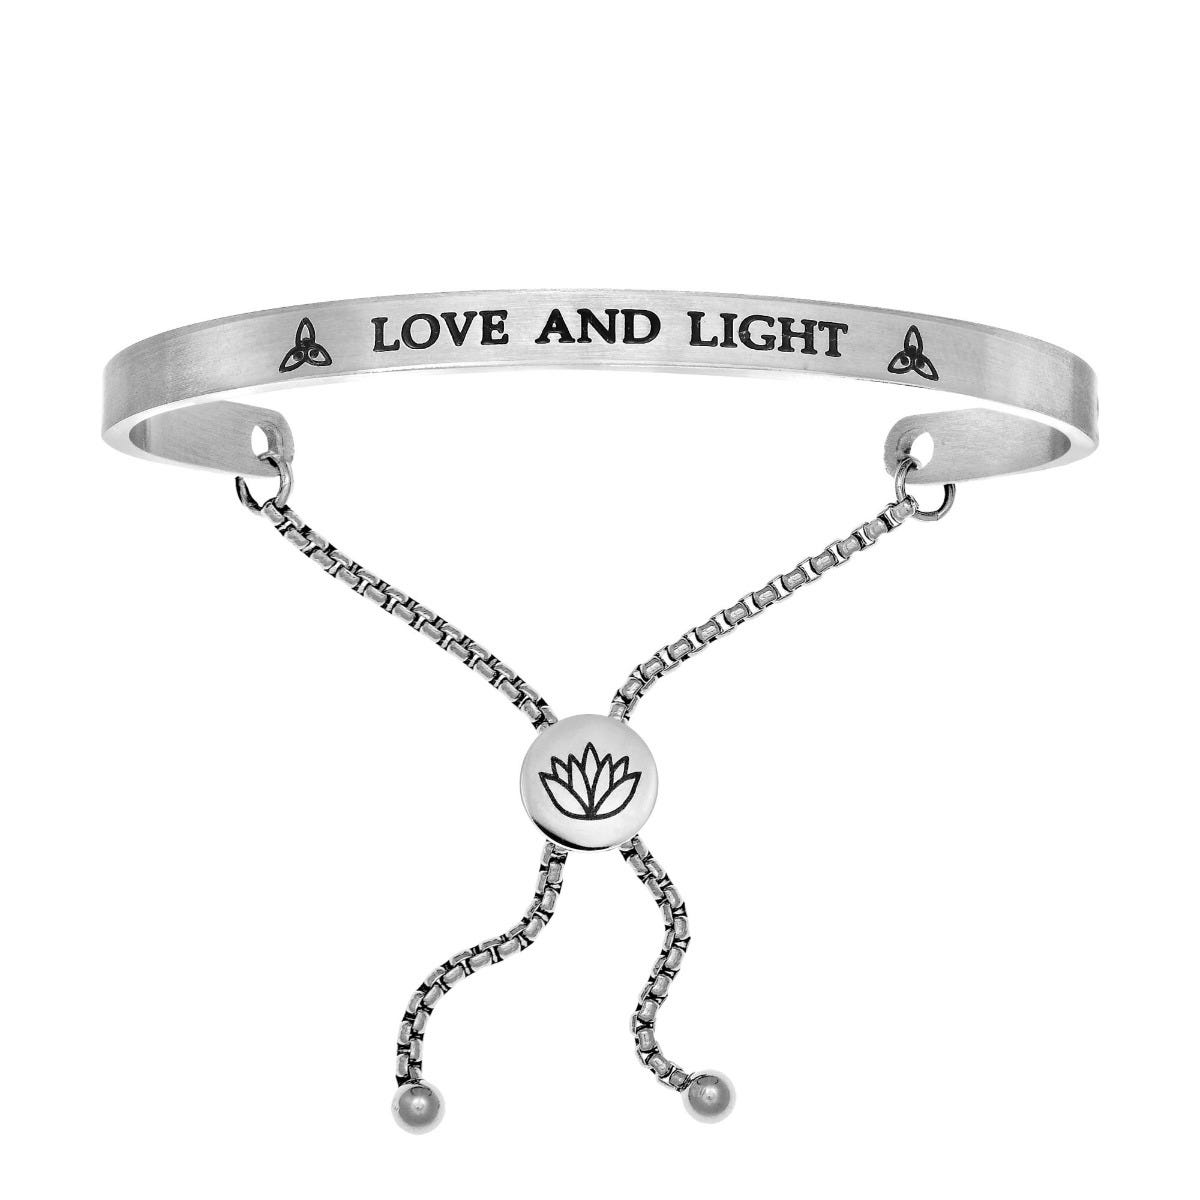 Love and Light. Intuitions Bolo Bracelet in White Stainless Steel